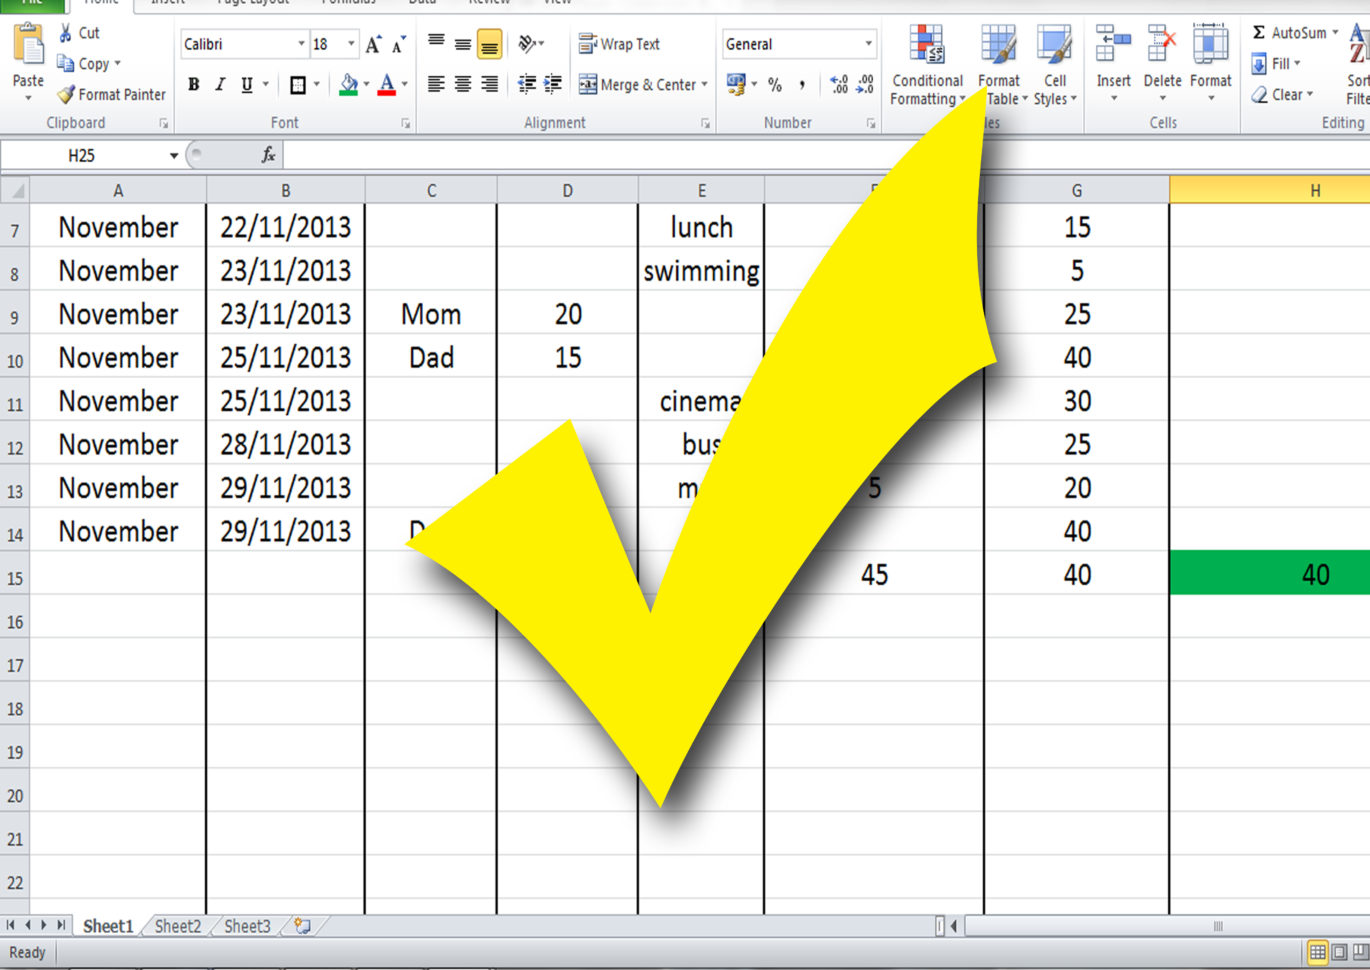 Best Way To Make A Budget Spreadsheet With How To Build A Budget Spreadsheet Teenagers: 13 Steps